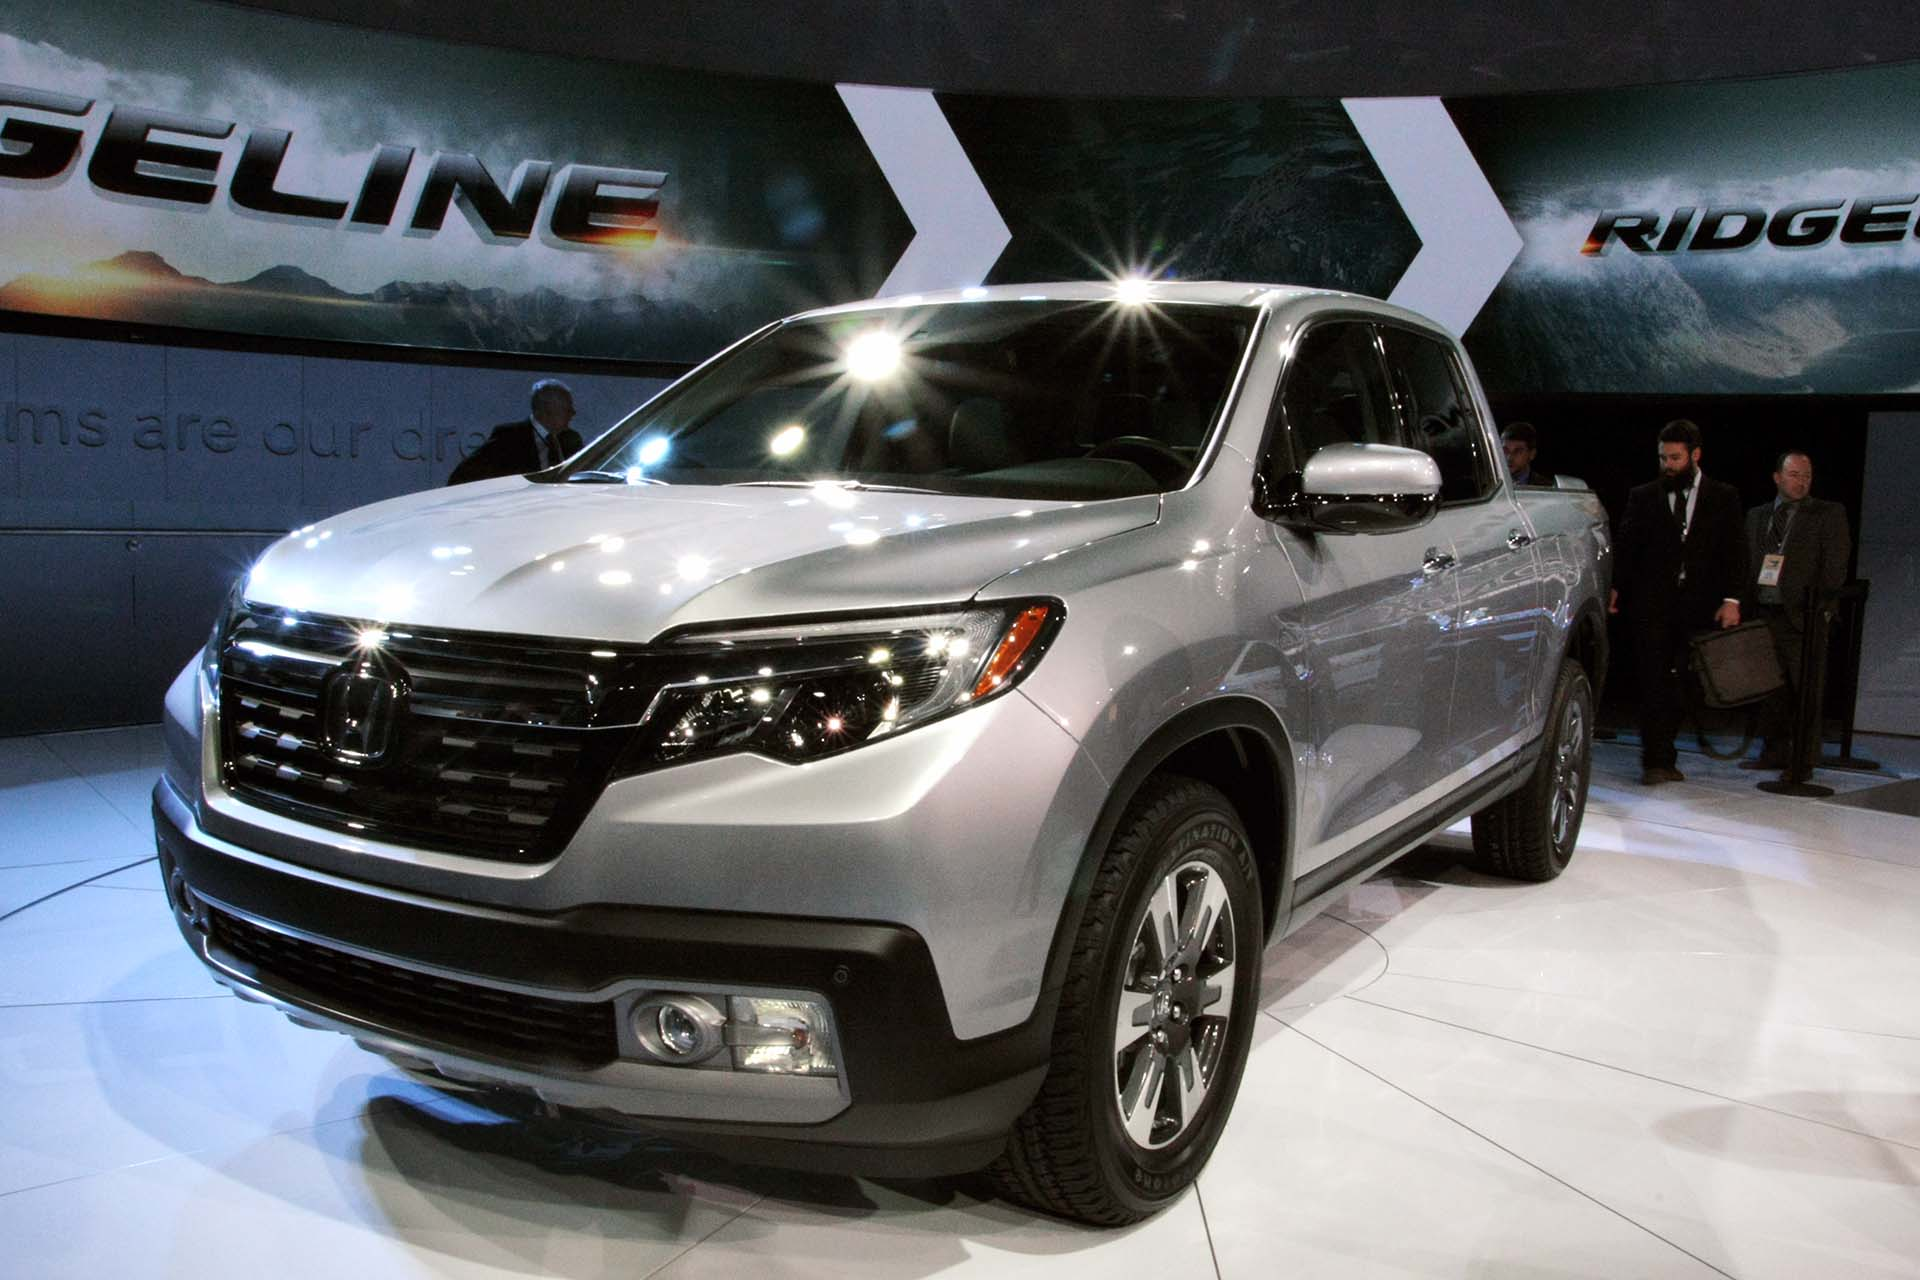 After a two-year hiatus, the Honda Ridgeline is making a comeback with some new tunes – literally, with its in-bed stereo system. (Tailgaters take note.) It's up against some stiff competition though, so here's hoping it'll impress the judges and the concert-goers, I mean, potential buyers.